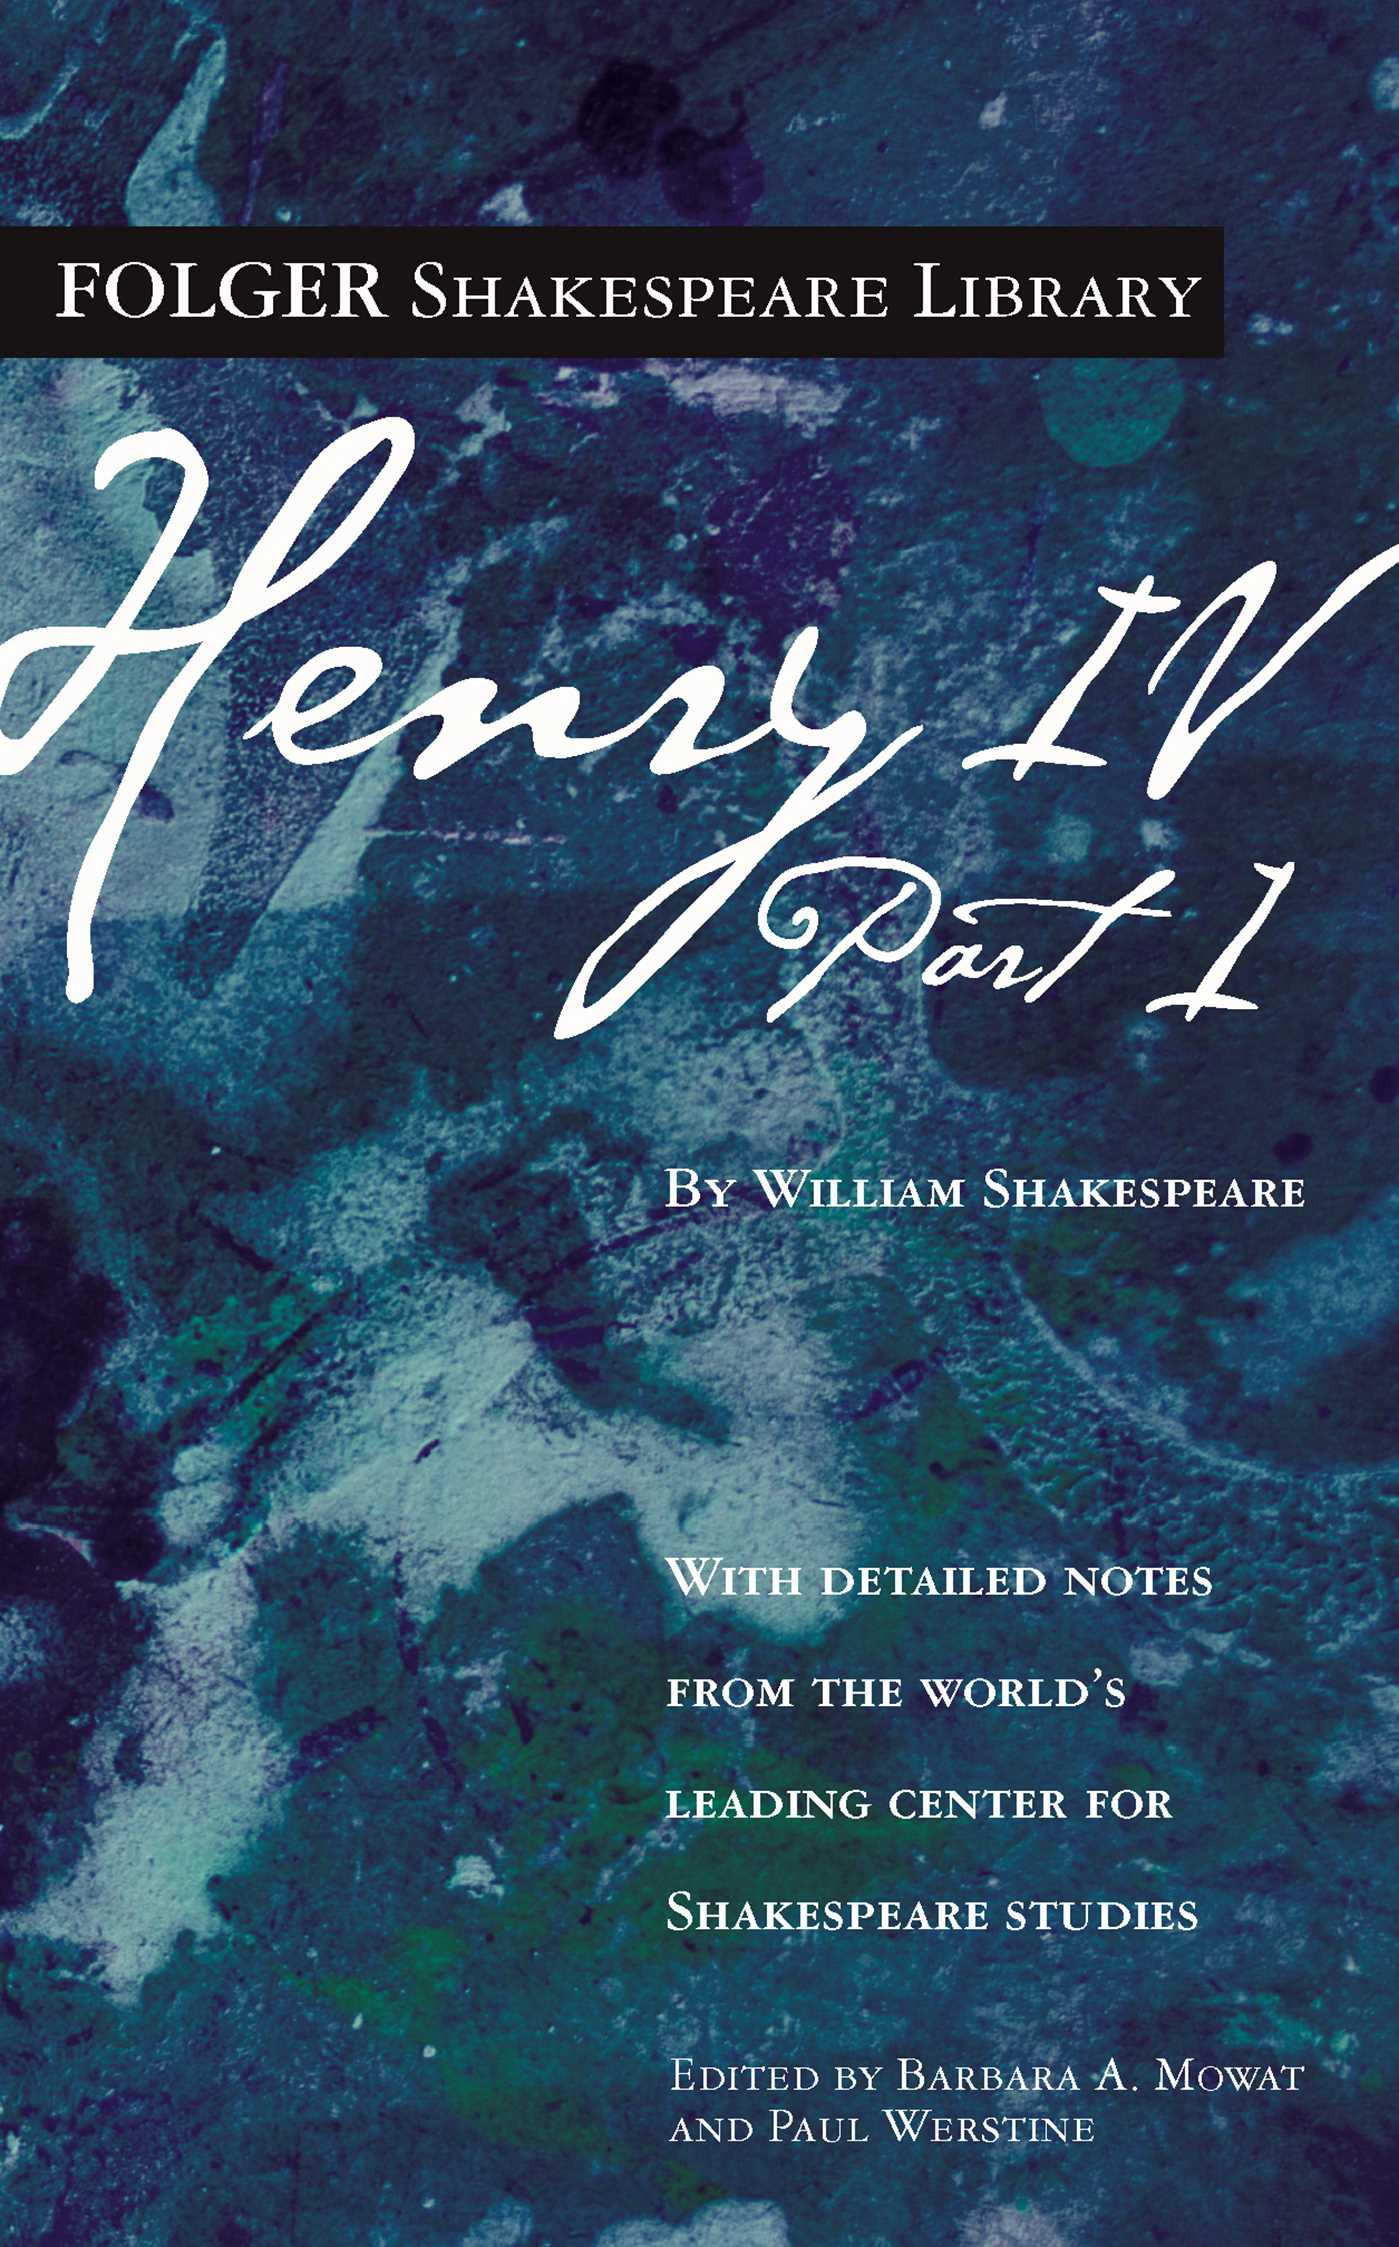 king henry iv part 1 Free essay: king henry iv part 1 although most people find it hard to climb out of a whole they have dug themselves into, prince hal in henry iv part i is.